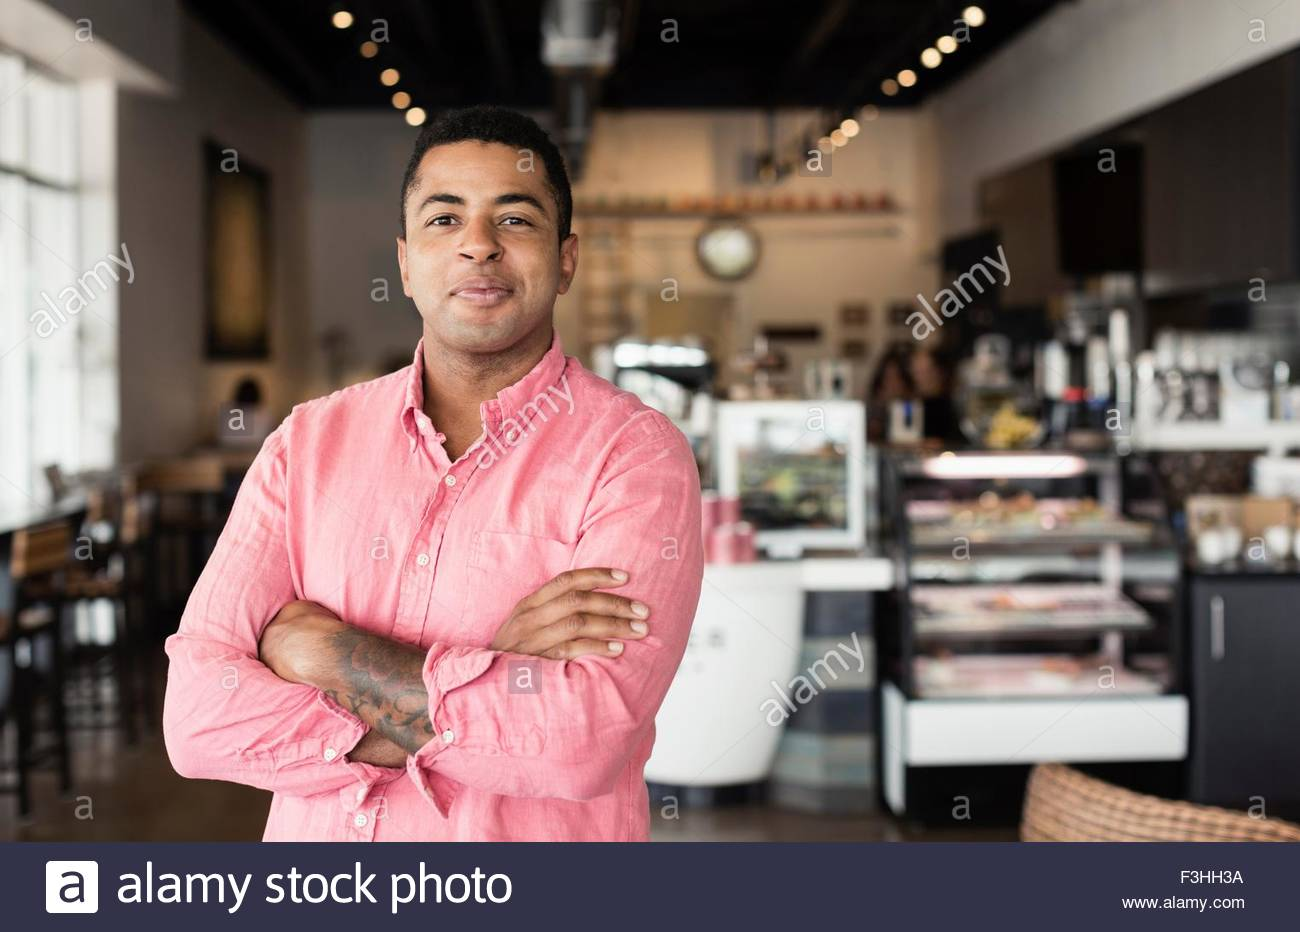 Portrait of young man in coffee shop Photo Stock